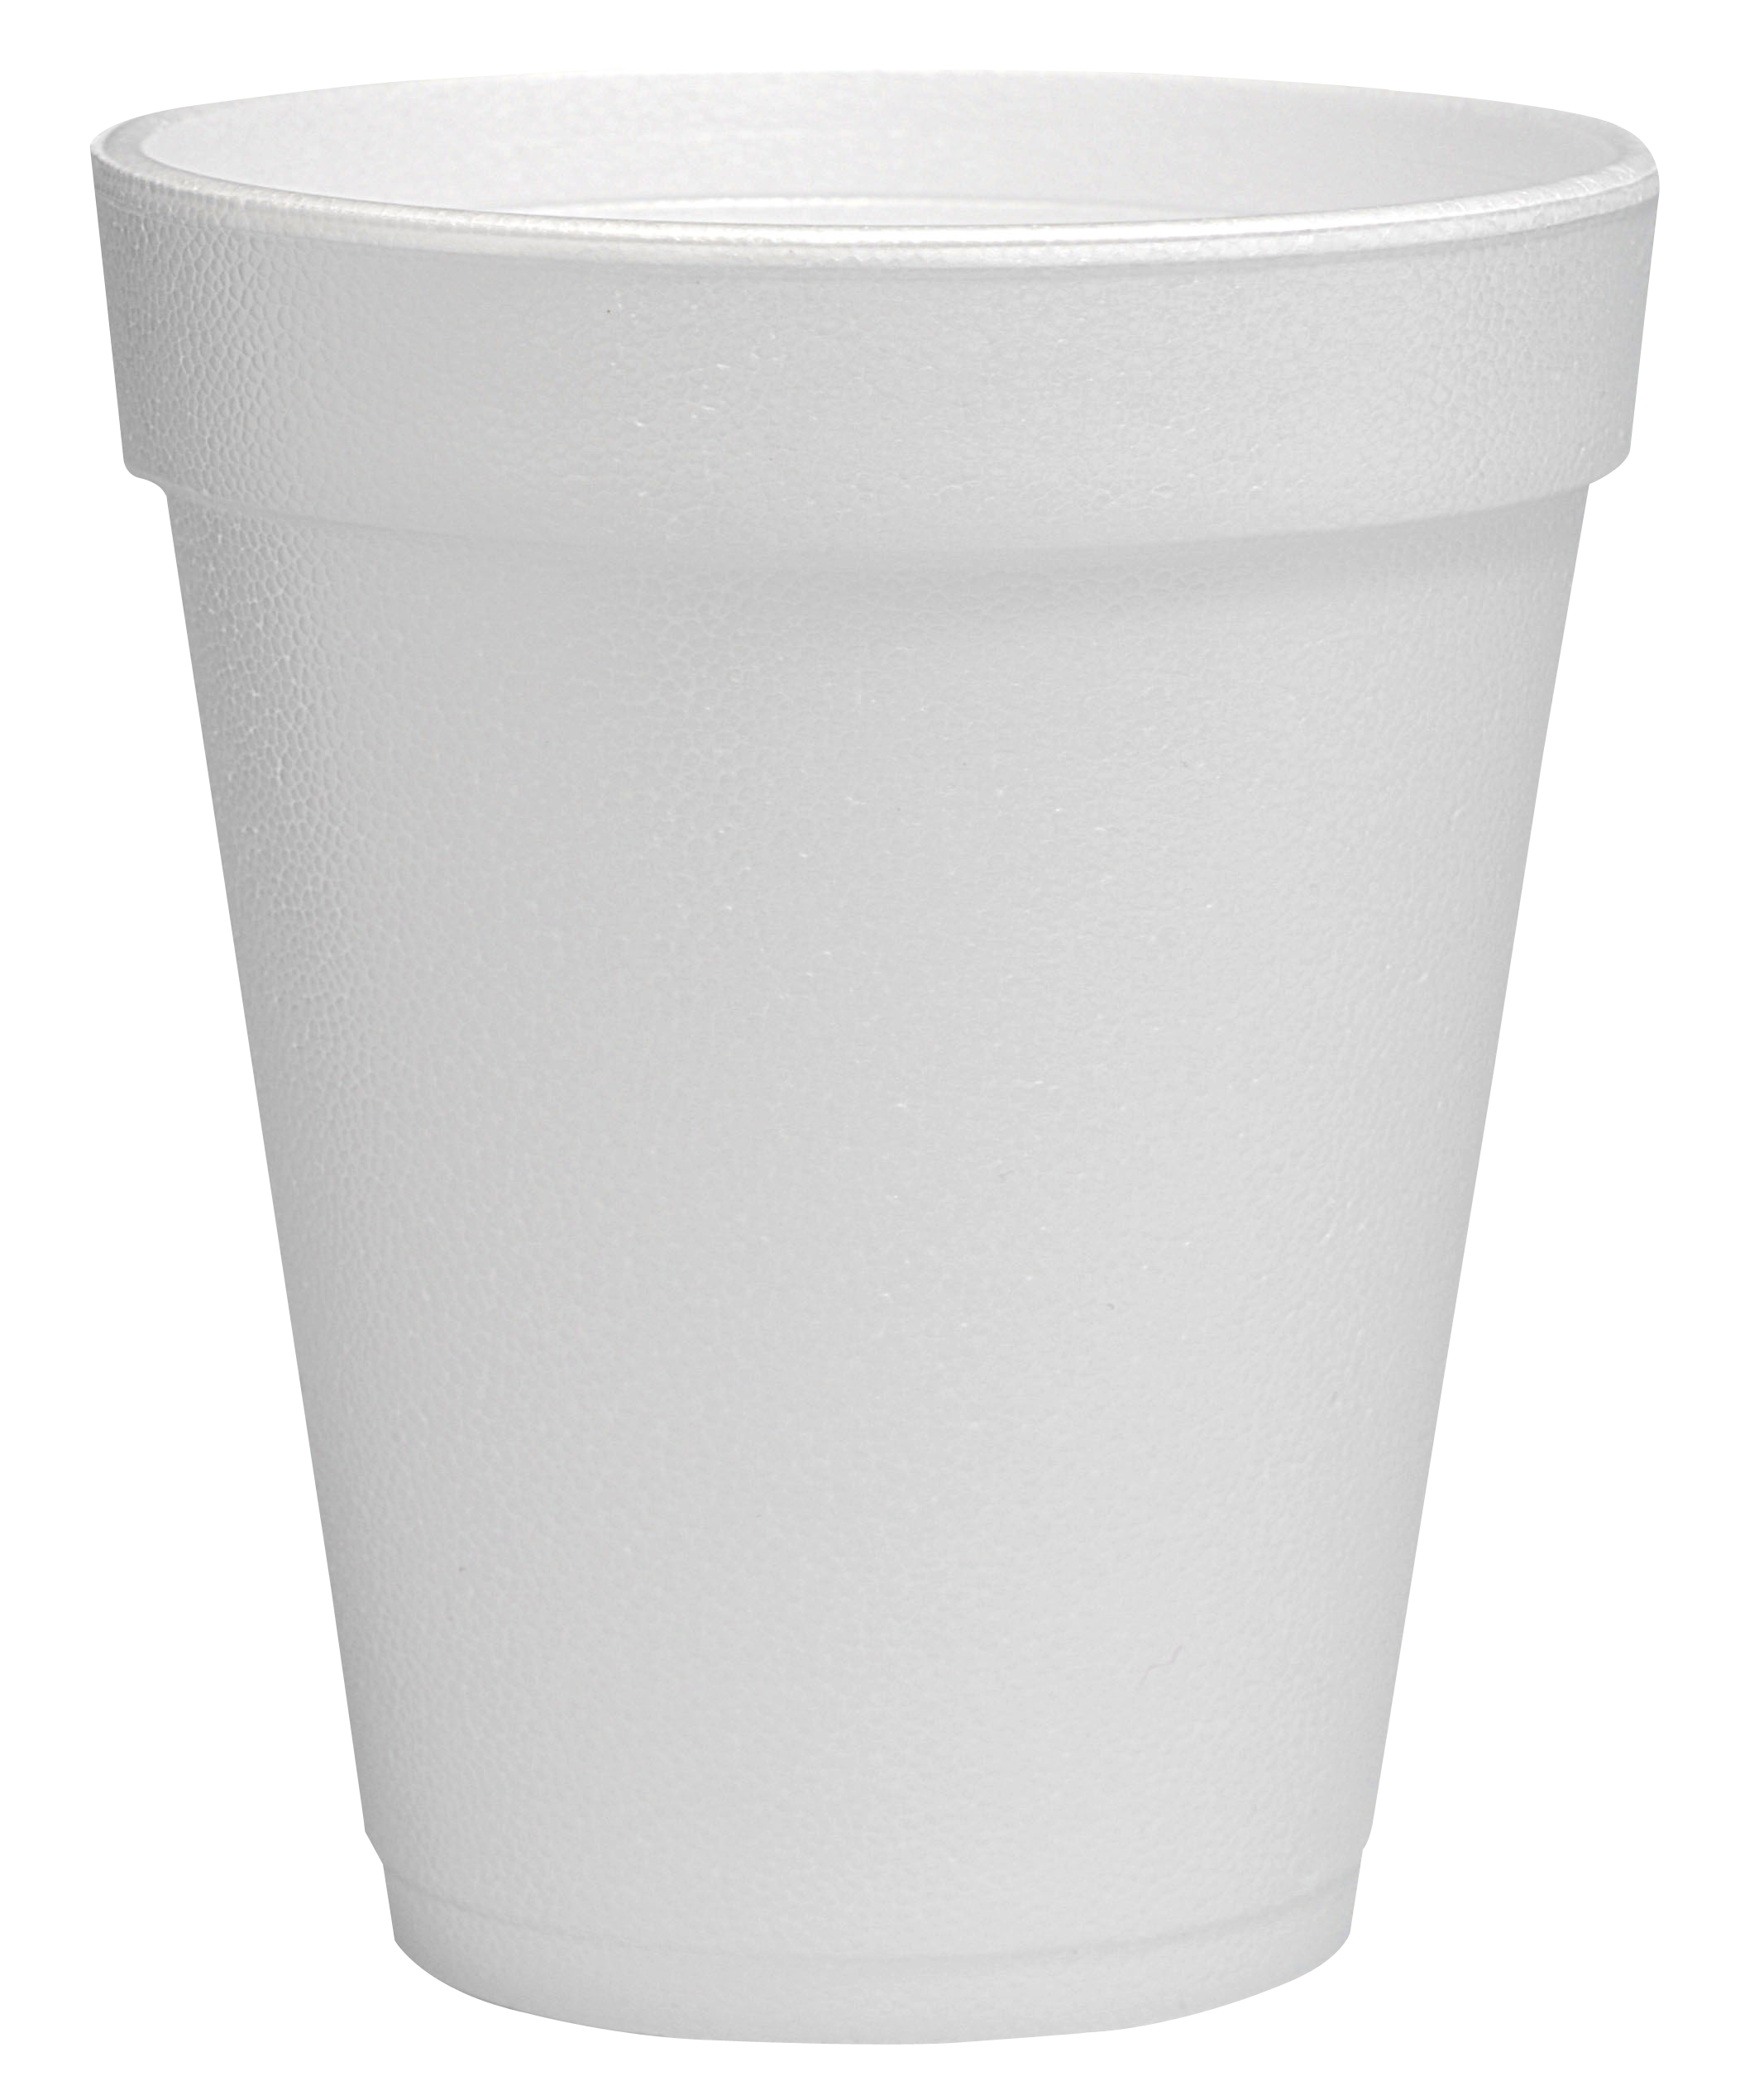 Plastic Cup PNG Transparent Image - Cup PNG